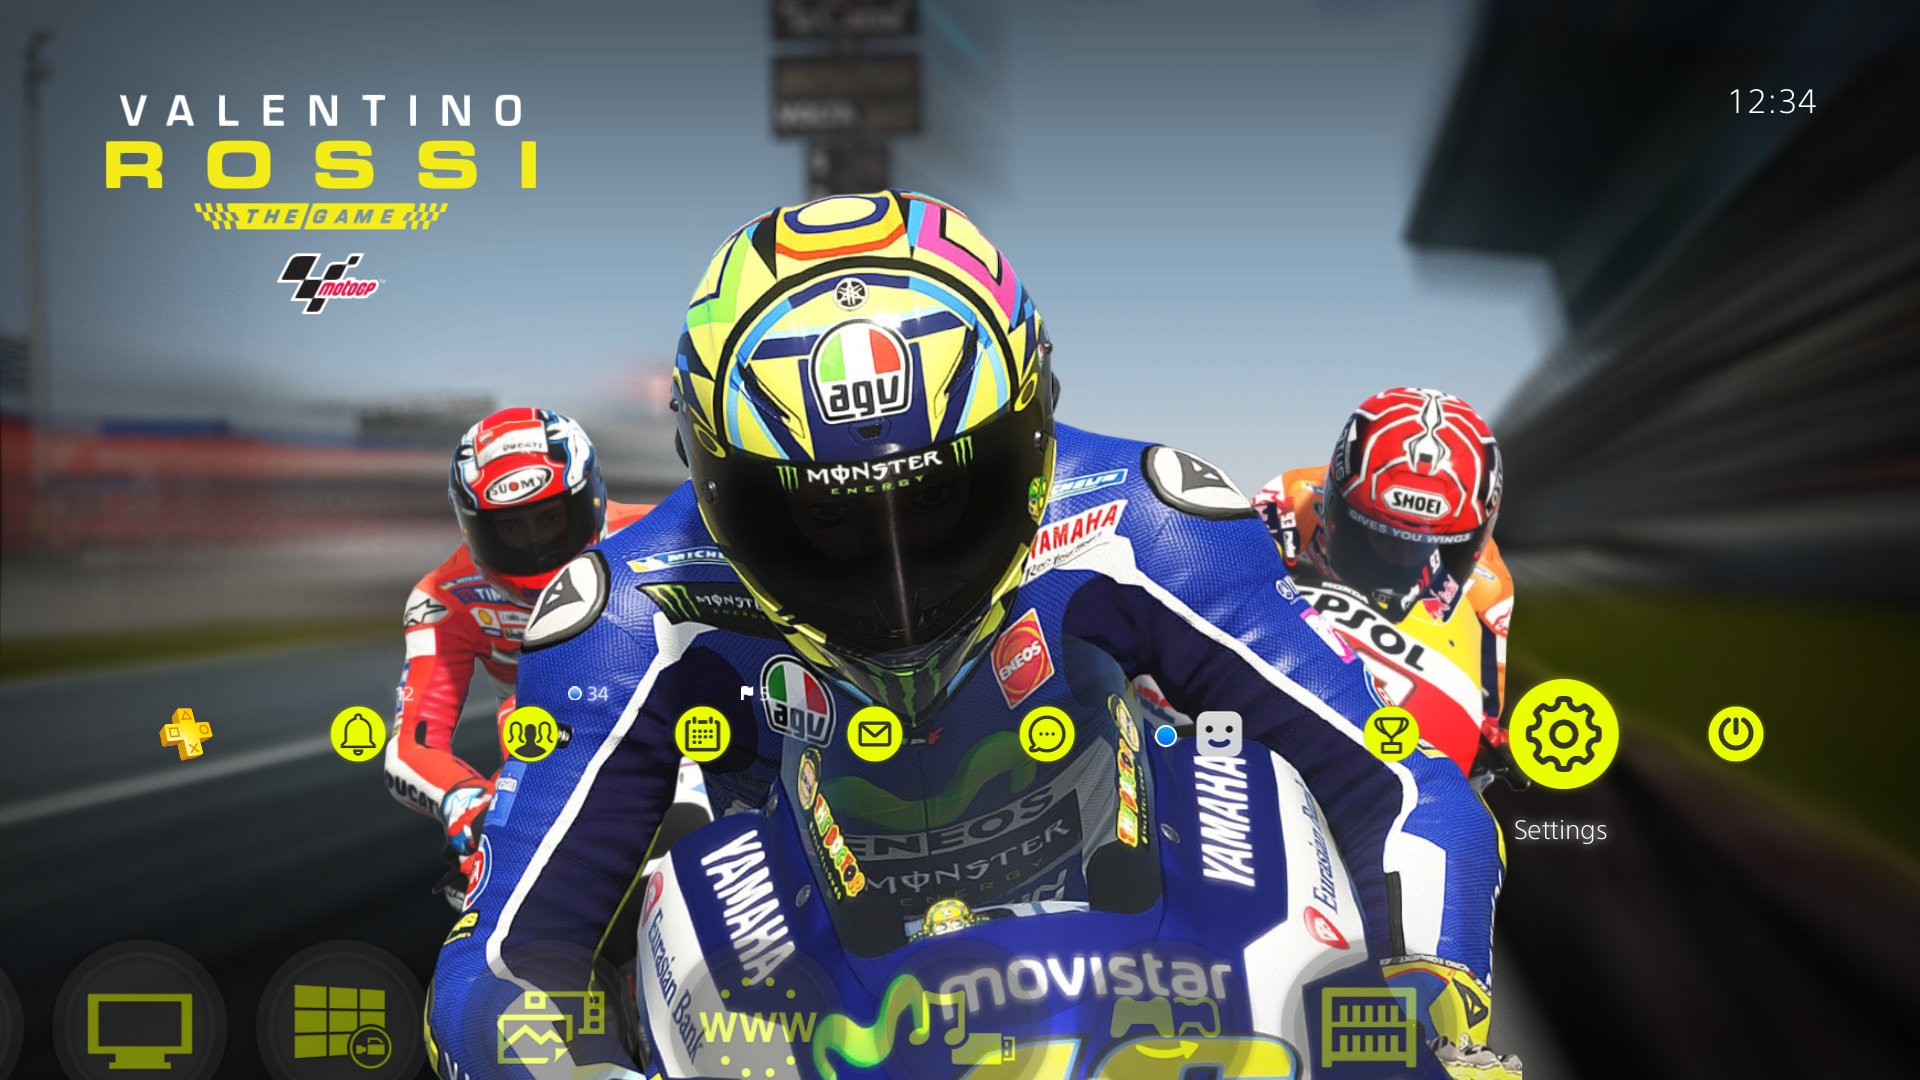 Valentino Rossi The Game - MotoGP™ Theme 2 on PS4 | Official PlayStation™Store US